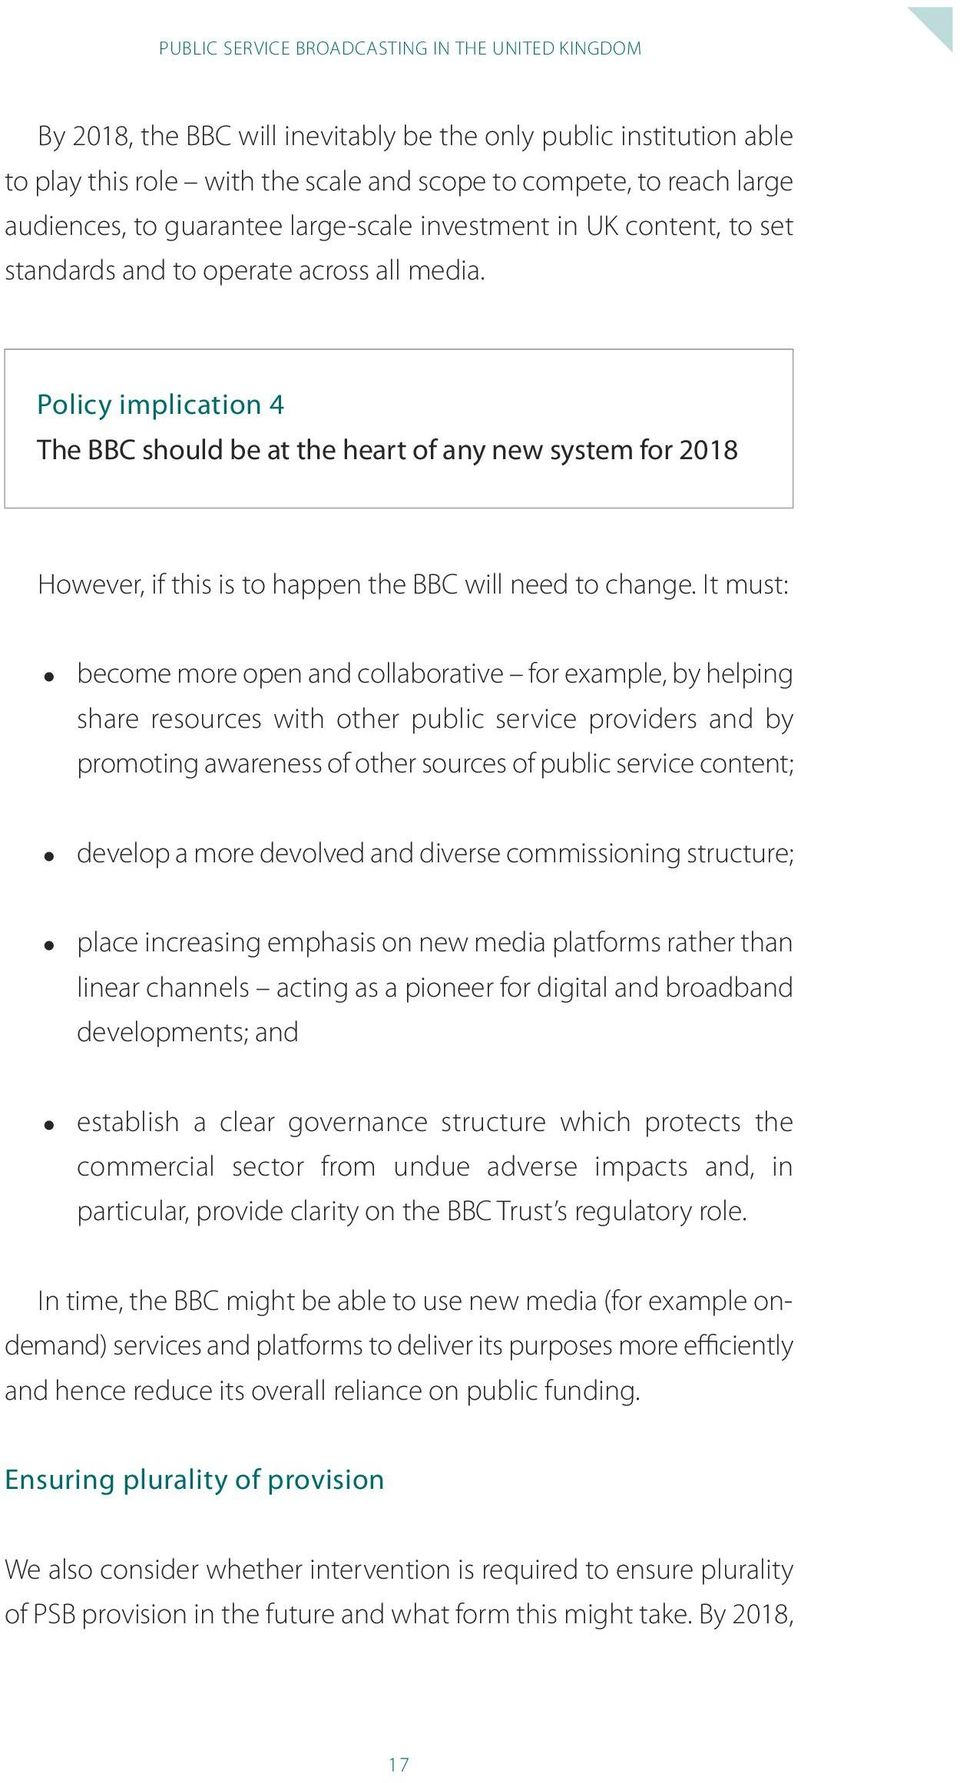 Policy implication 4 the BBC should be at the heart of any new system for 2018 however, if this is to happen the bbc will need to change.